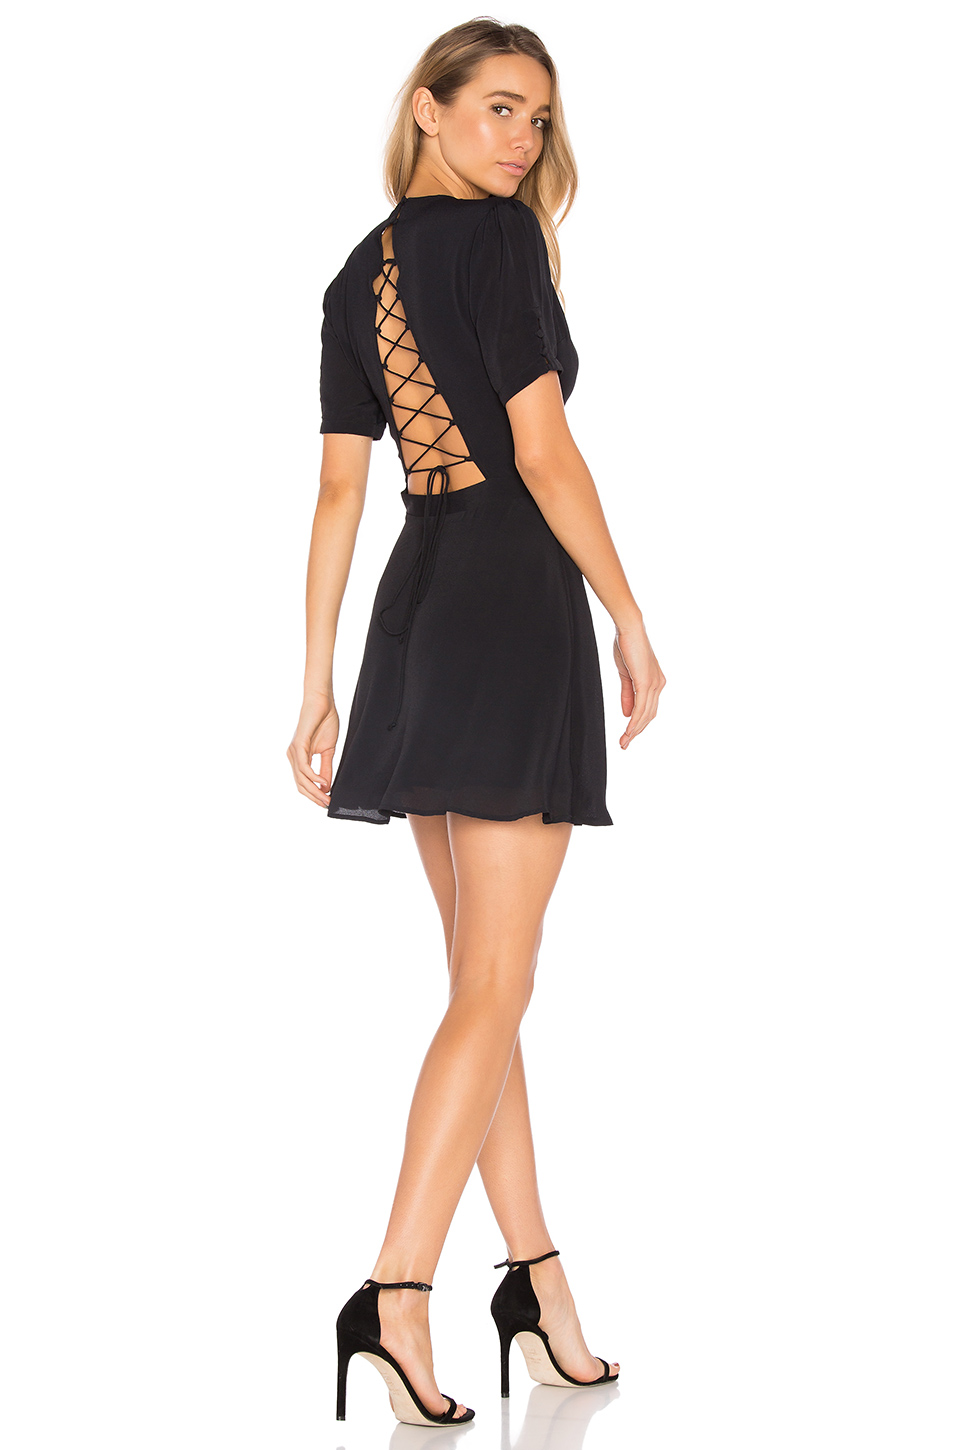 Privacy Please Virginia Dress in Black